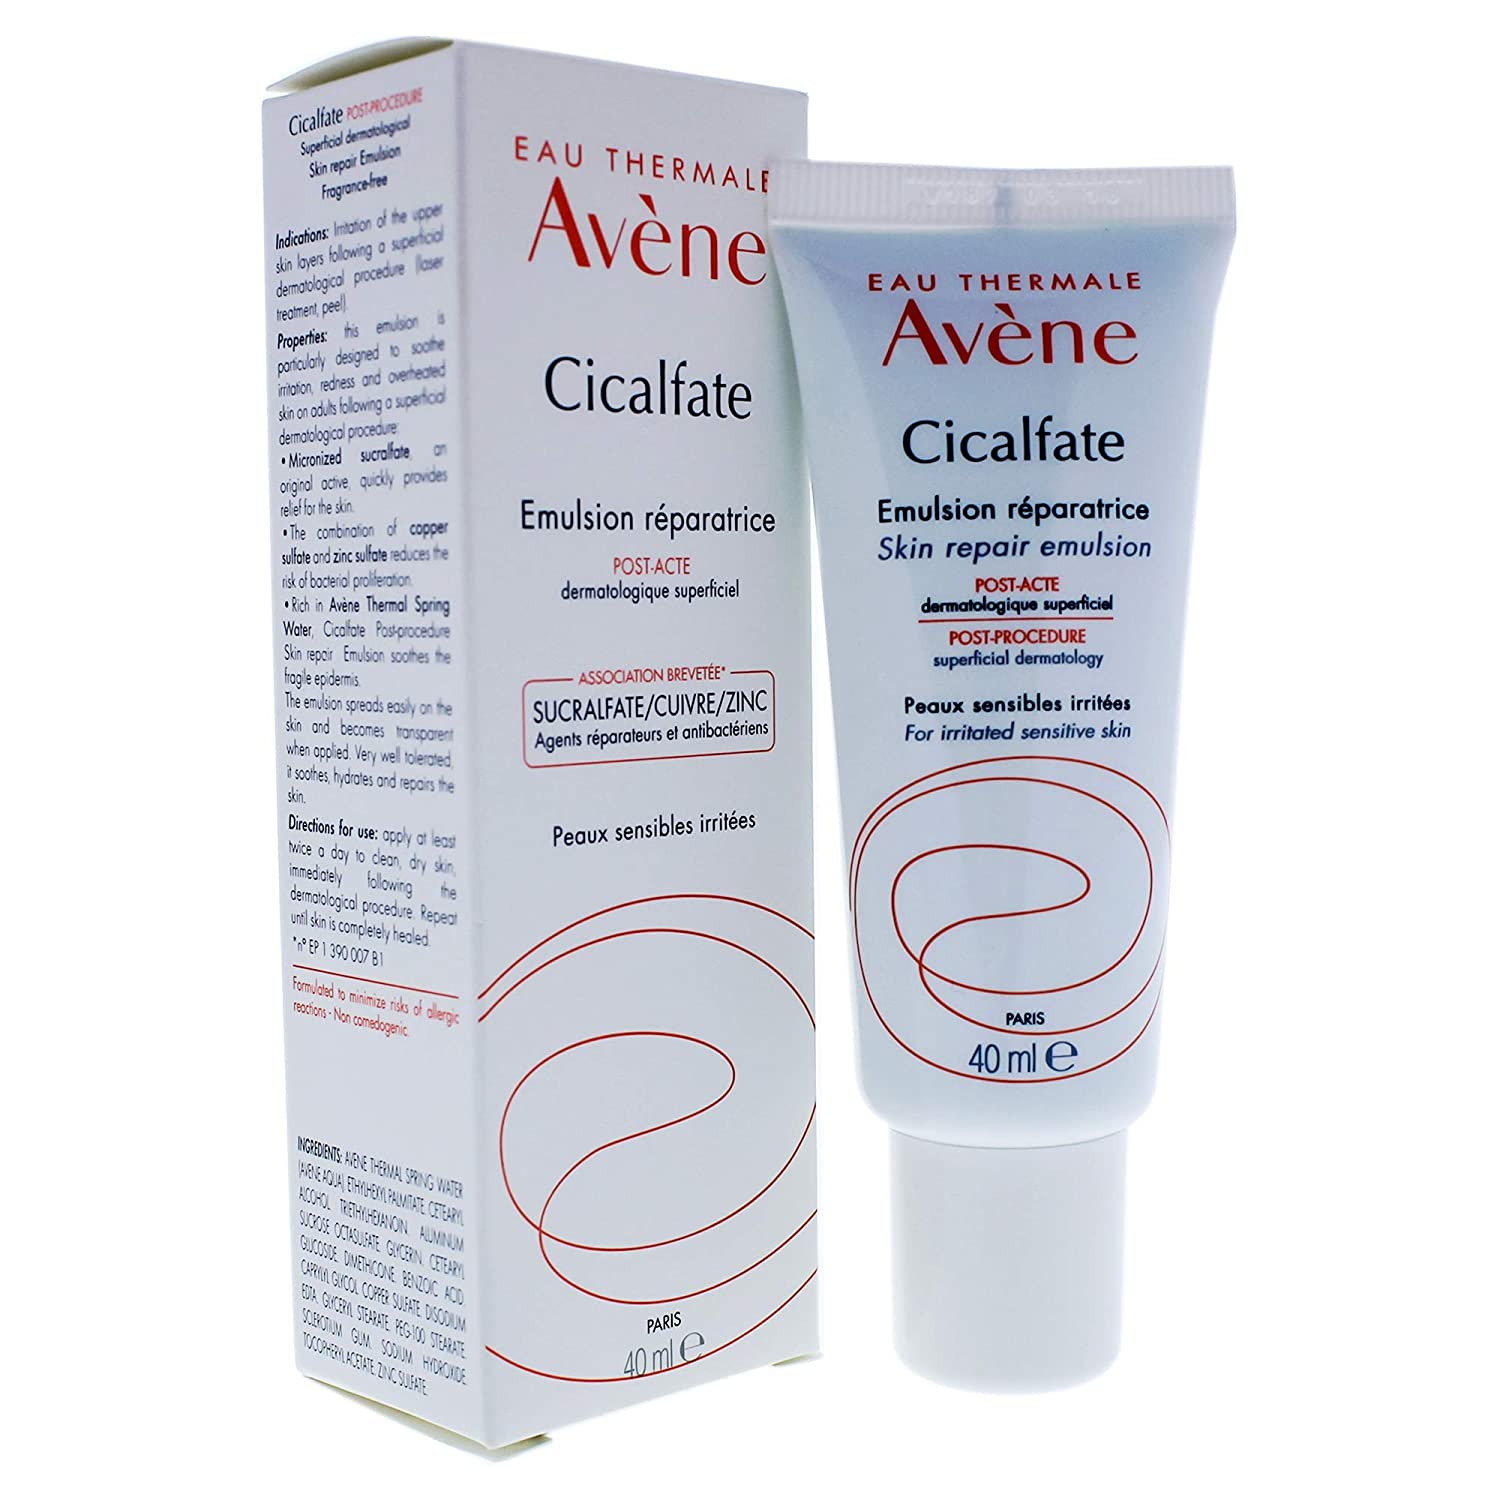 Eau Thermale Avene Cicalfate Post- Procedure, Soothing Skin Recovery Lotion, Hypoallergenic, Non-Comedogenic, 1.35 oz.